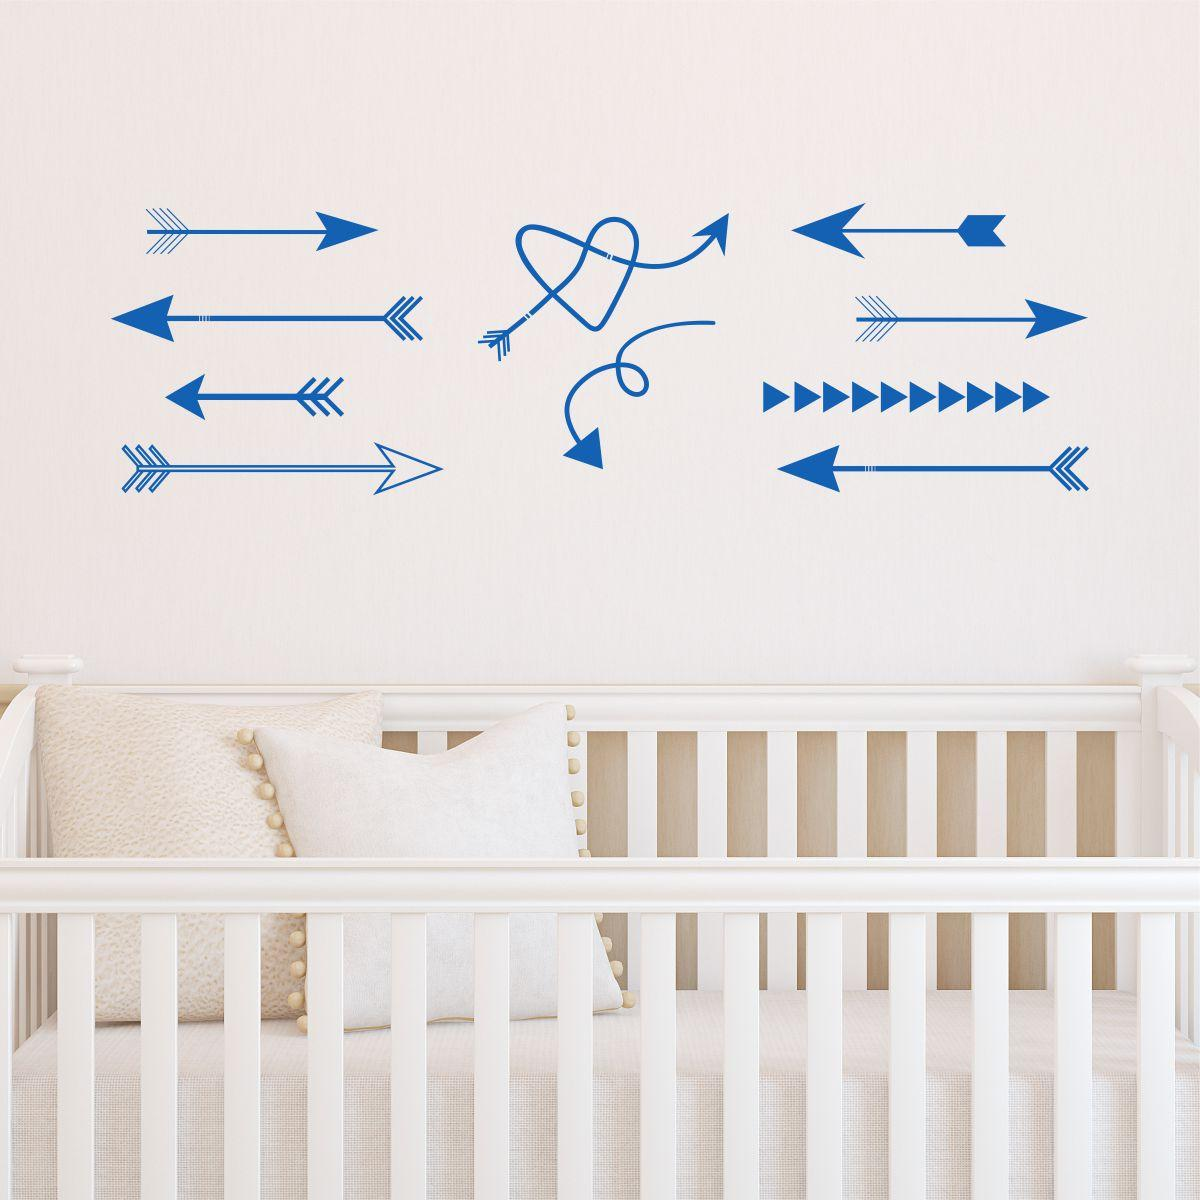 Whimsical Arrows Wall Quotes Wall Art Decal Wallquotes Com